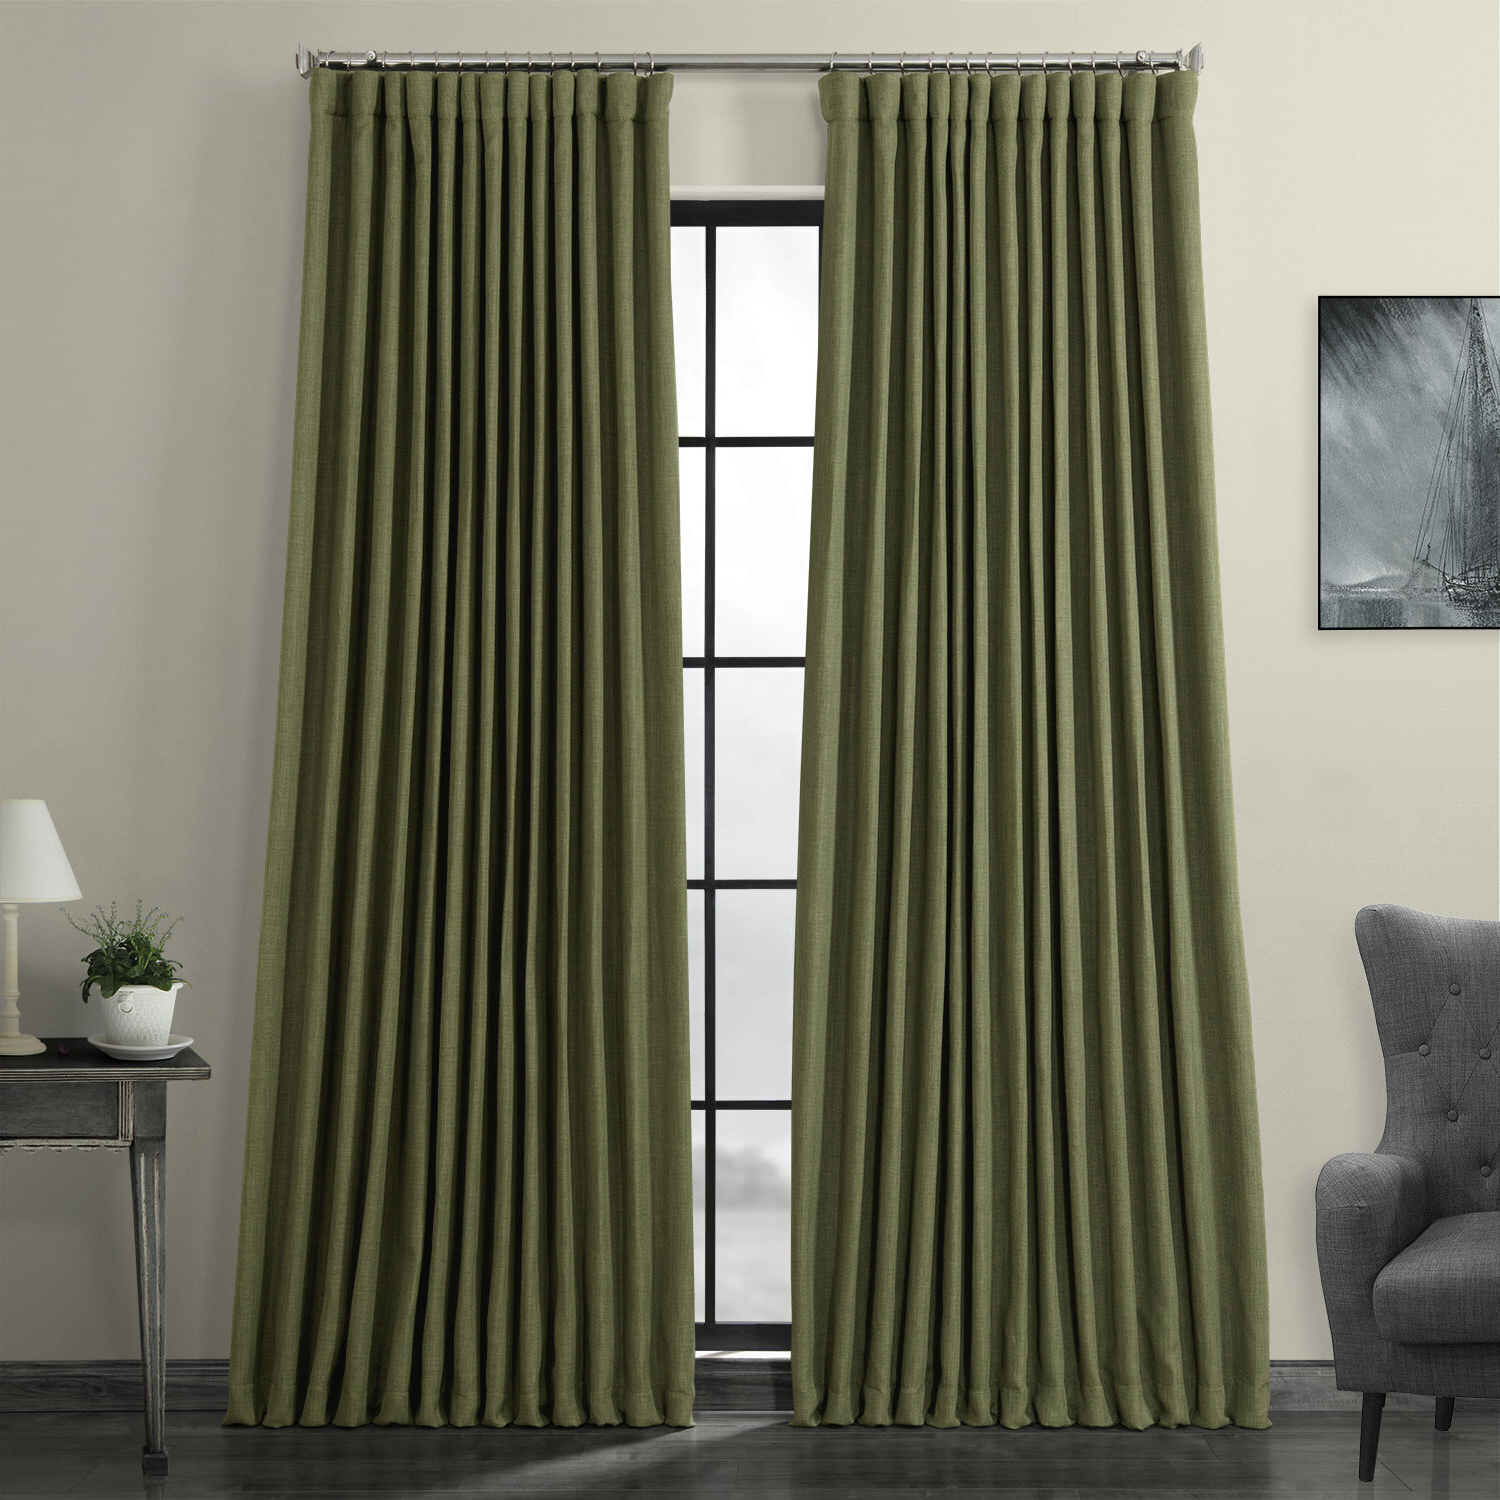 2021 Faux Linen Extra Wide Blackout Curtains With Waubun Faux Linen Extra Wide Solid Color Blackout Rod Pocket Single Curtain  Panel (View 2 of 21)